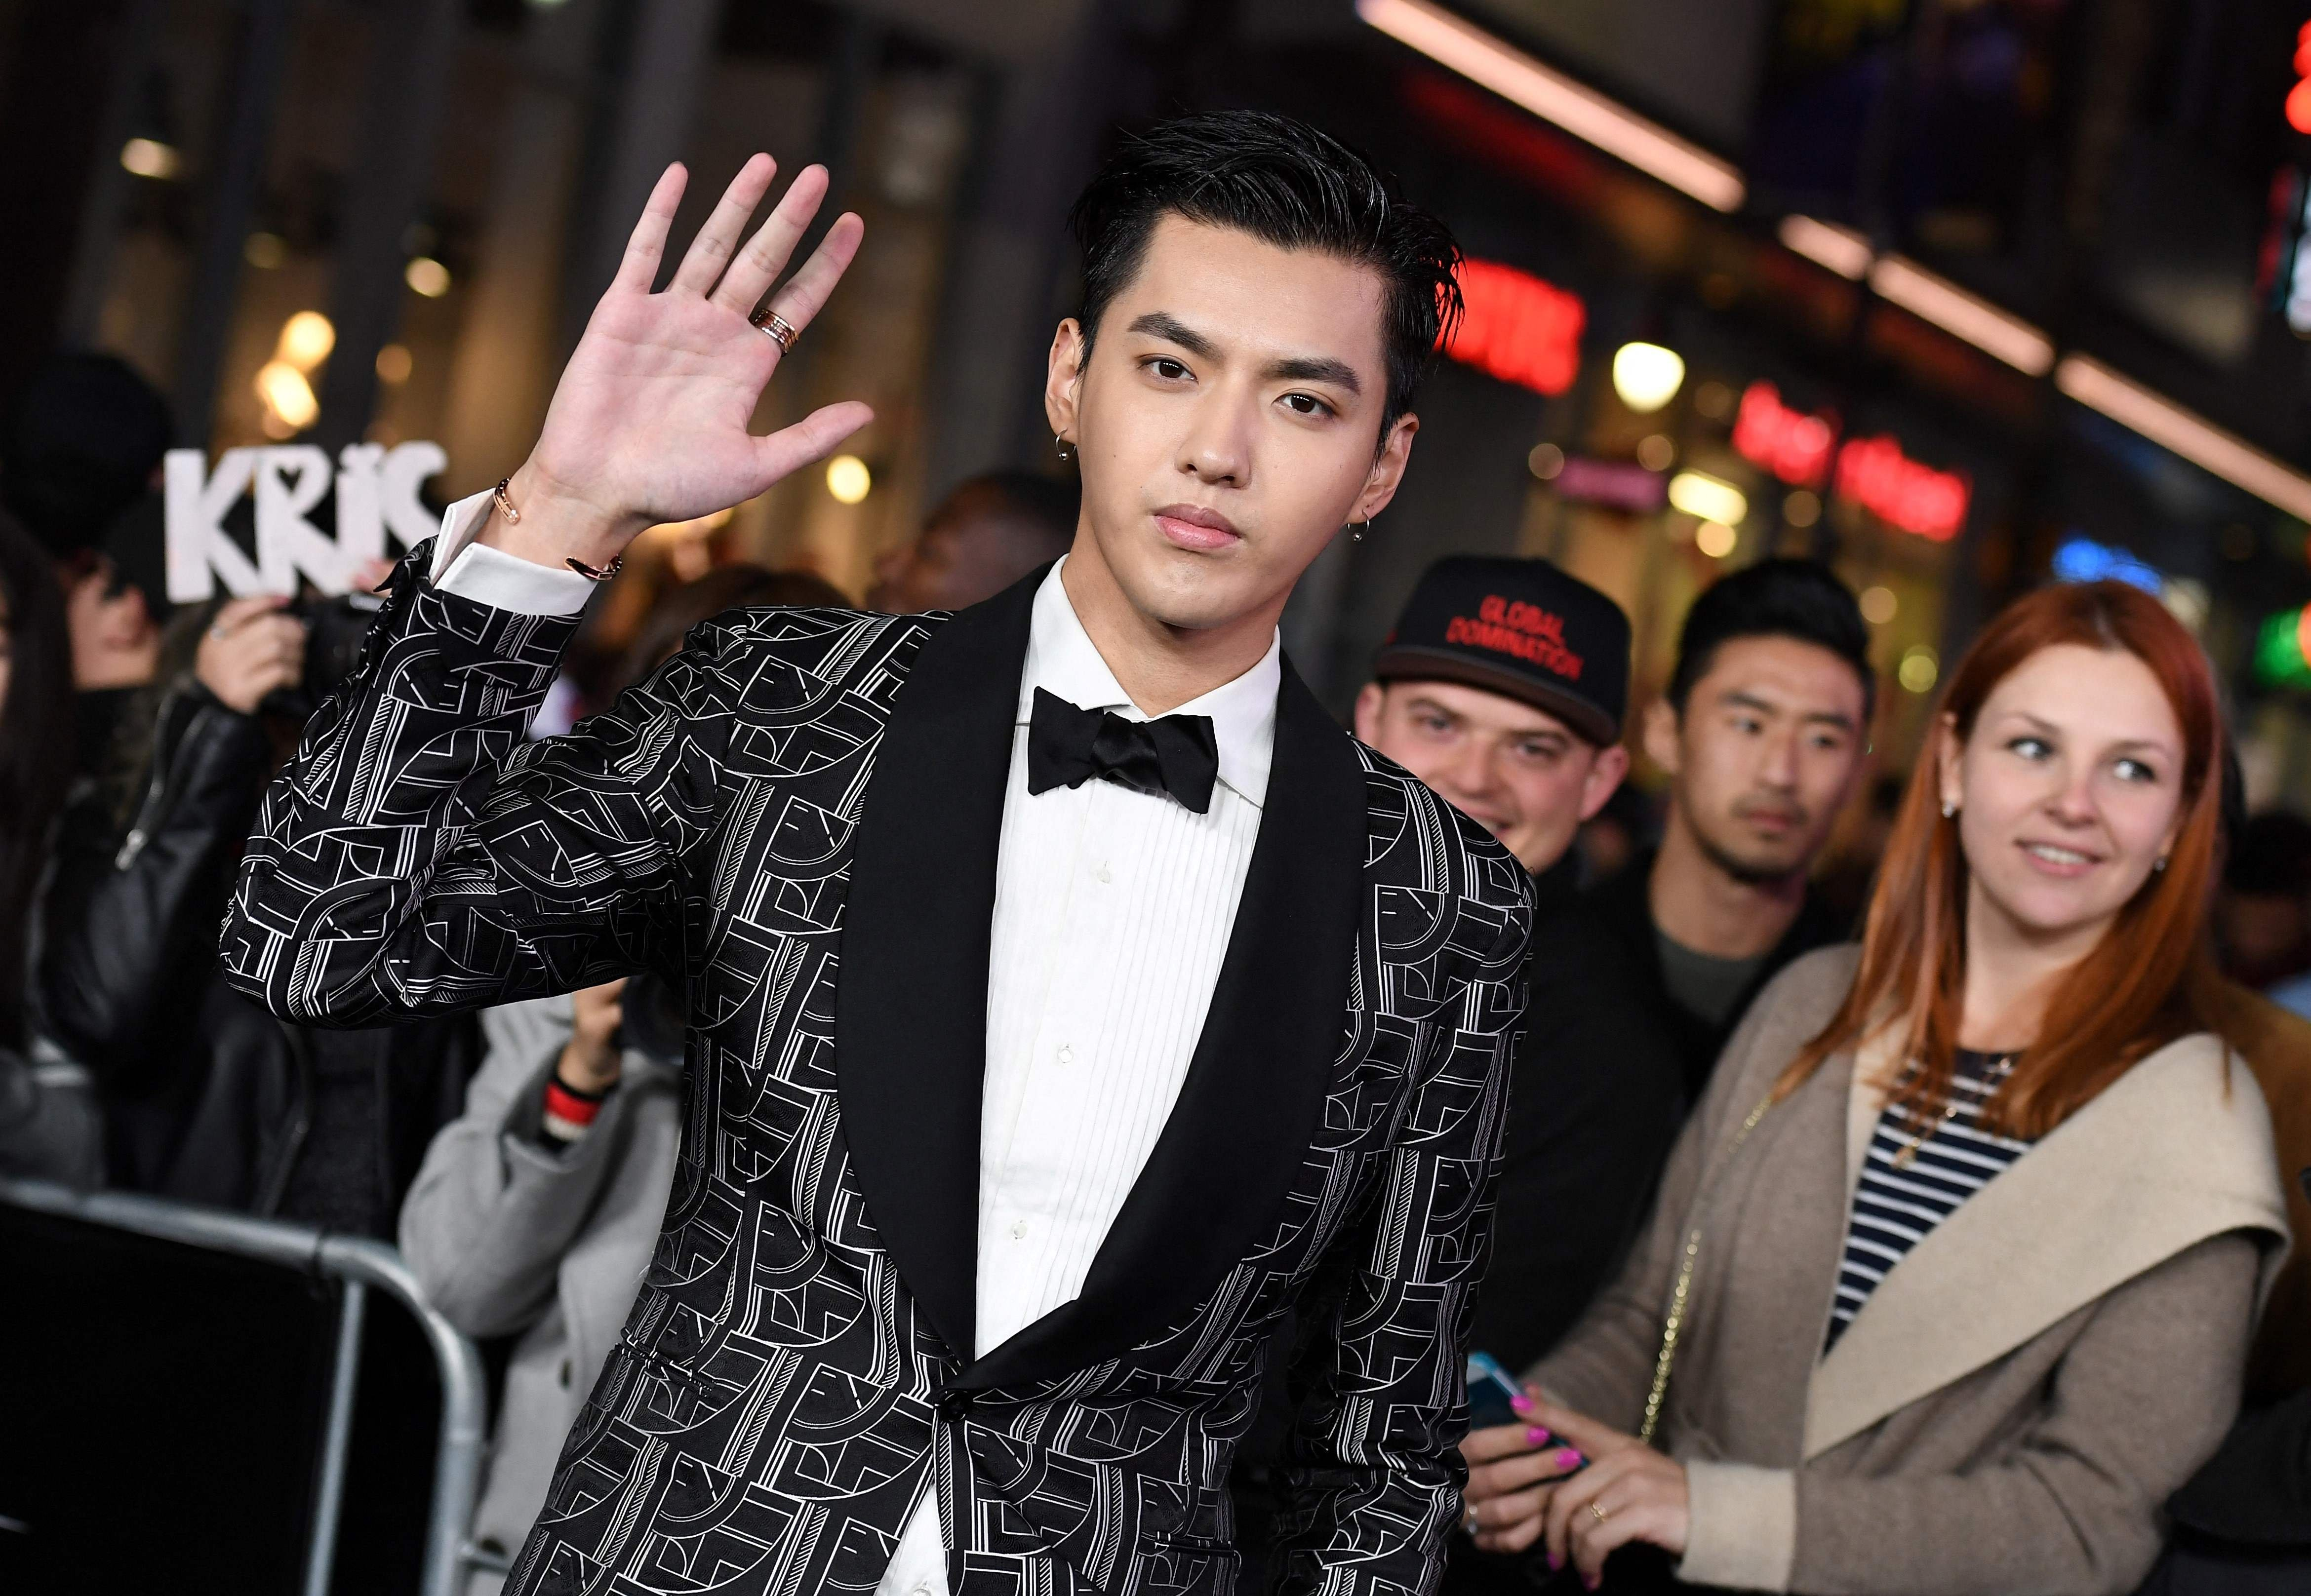 Canadian pop star Kris Wu detained over rape allegation by police in China